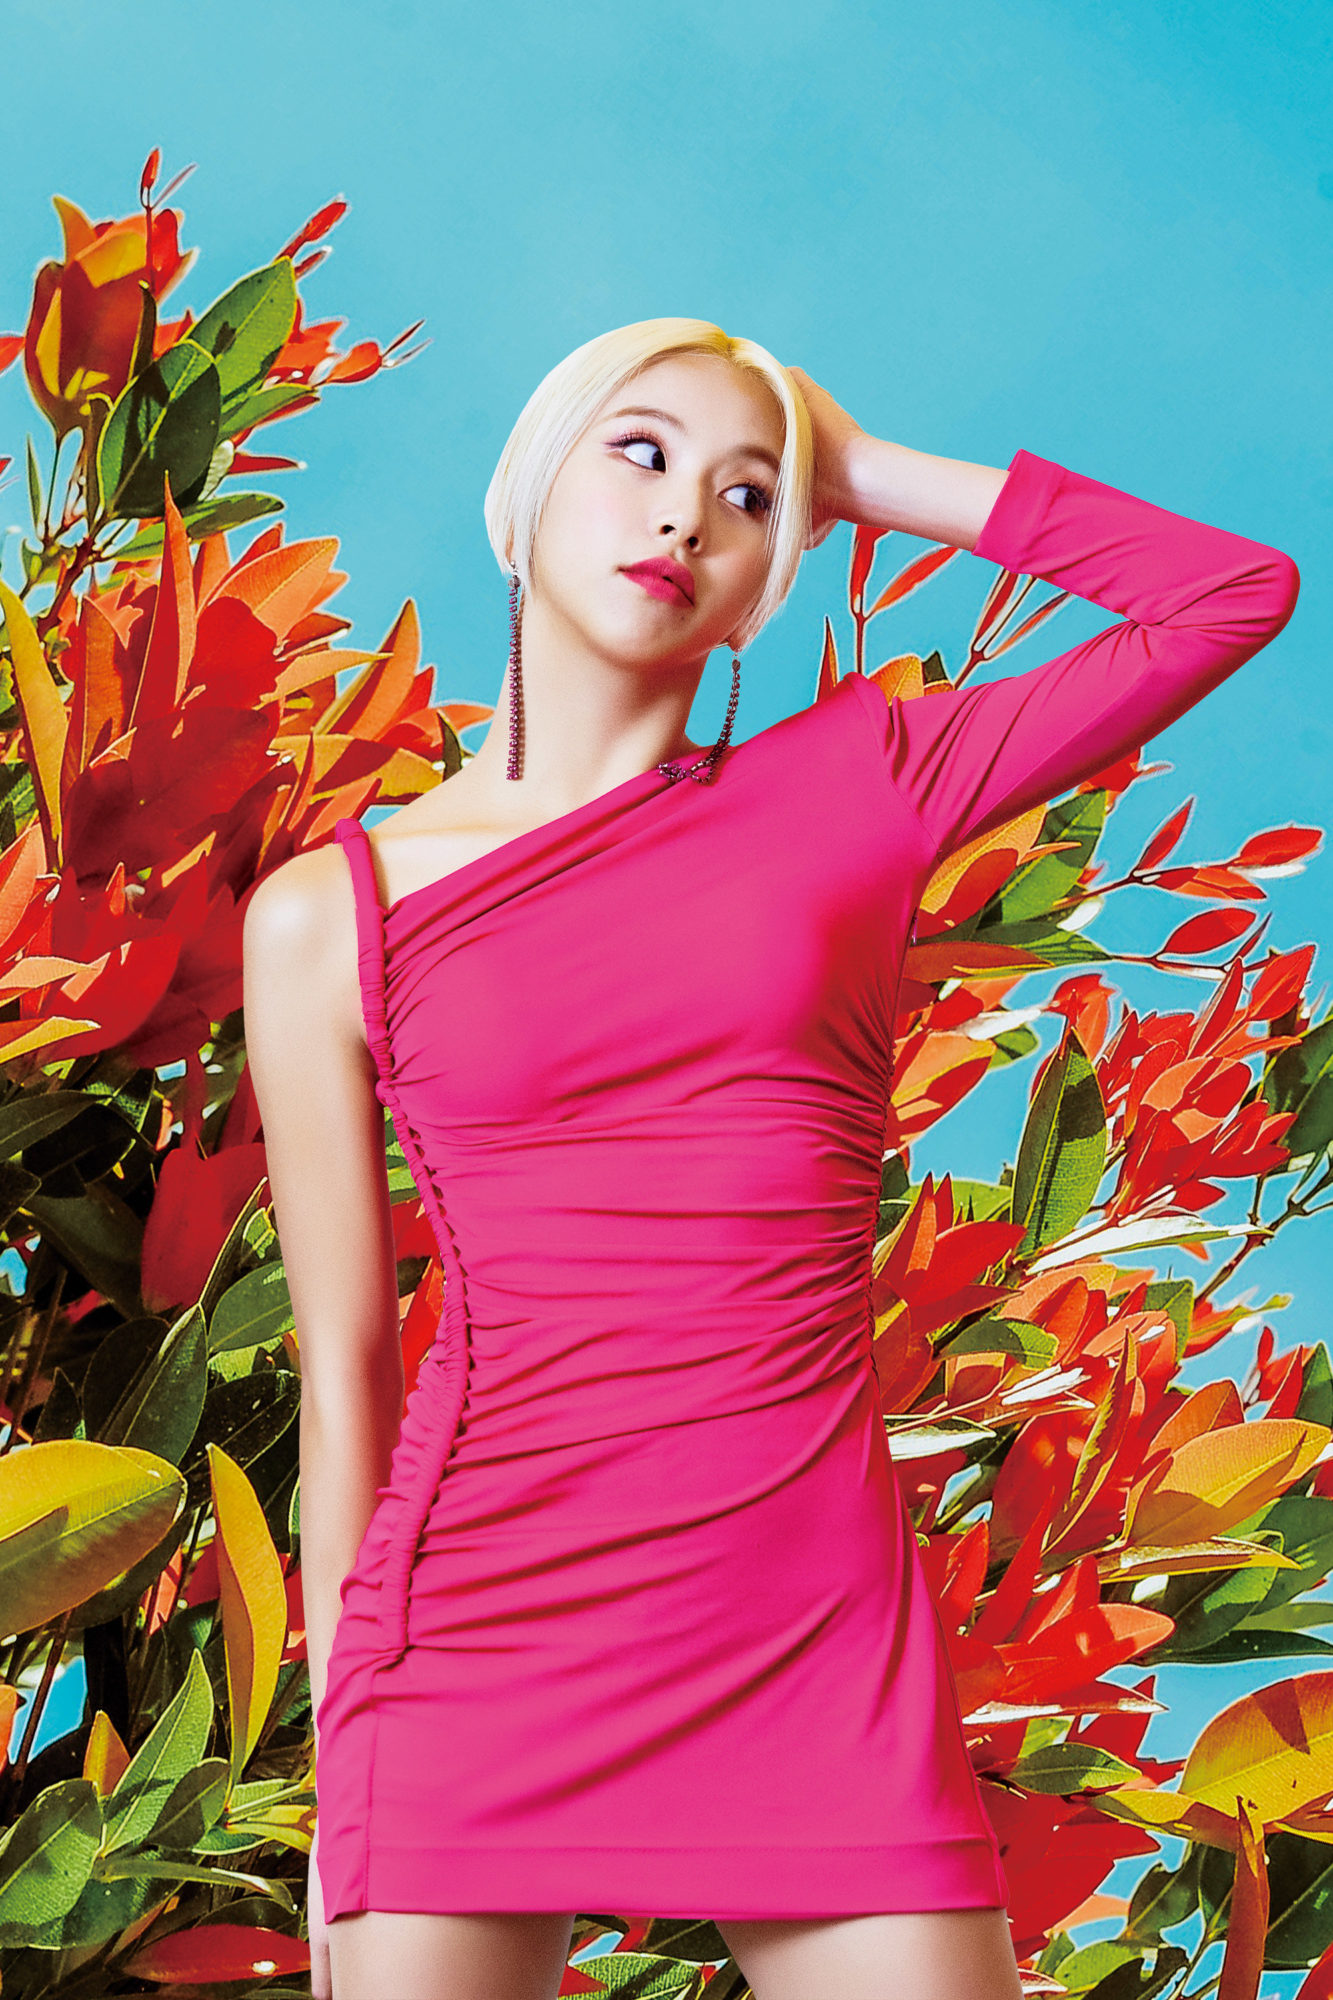 Chaeyoung Fancy HD